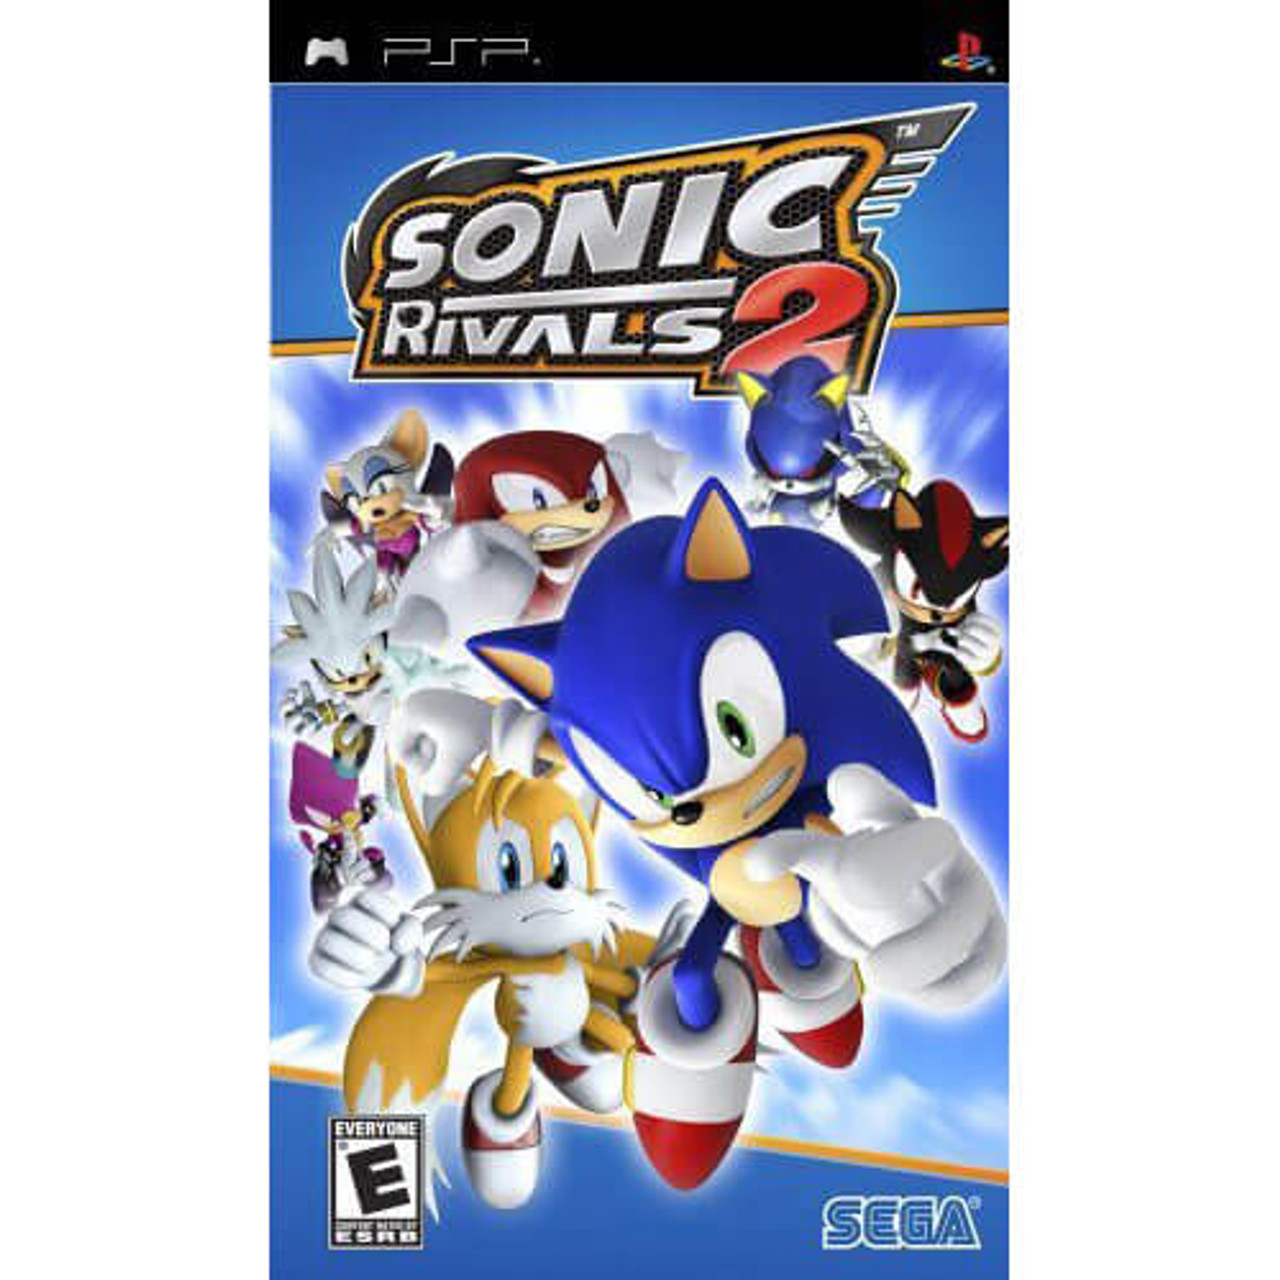 Sonic Rivals 2 Psp Game For Sale Dkoldies